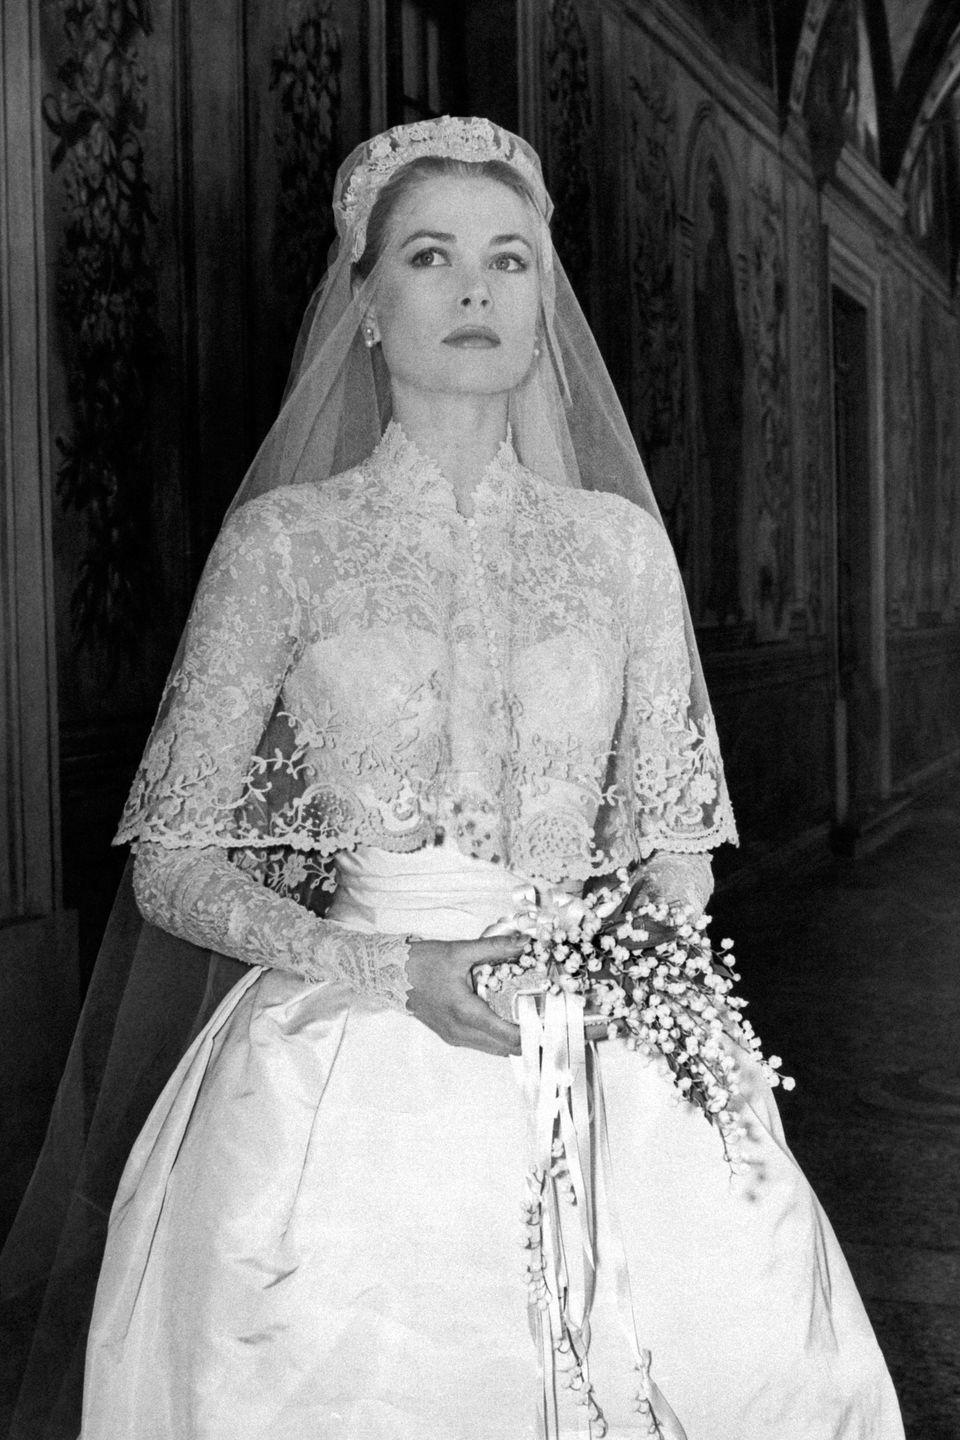 """<p>Devout mid-20th century brides often carried a Bible instead of lots of flowers, according to the <a href=""""http://www.philamuseum.org/collections/permanent/152527.html?mulR=317094392